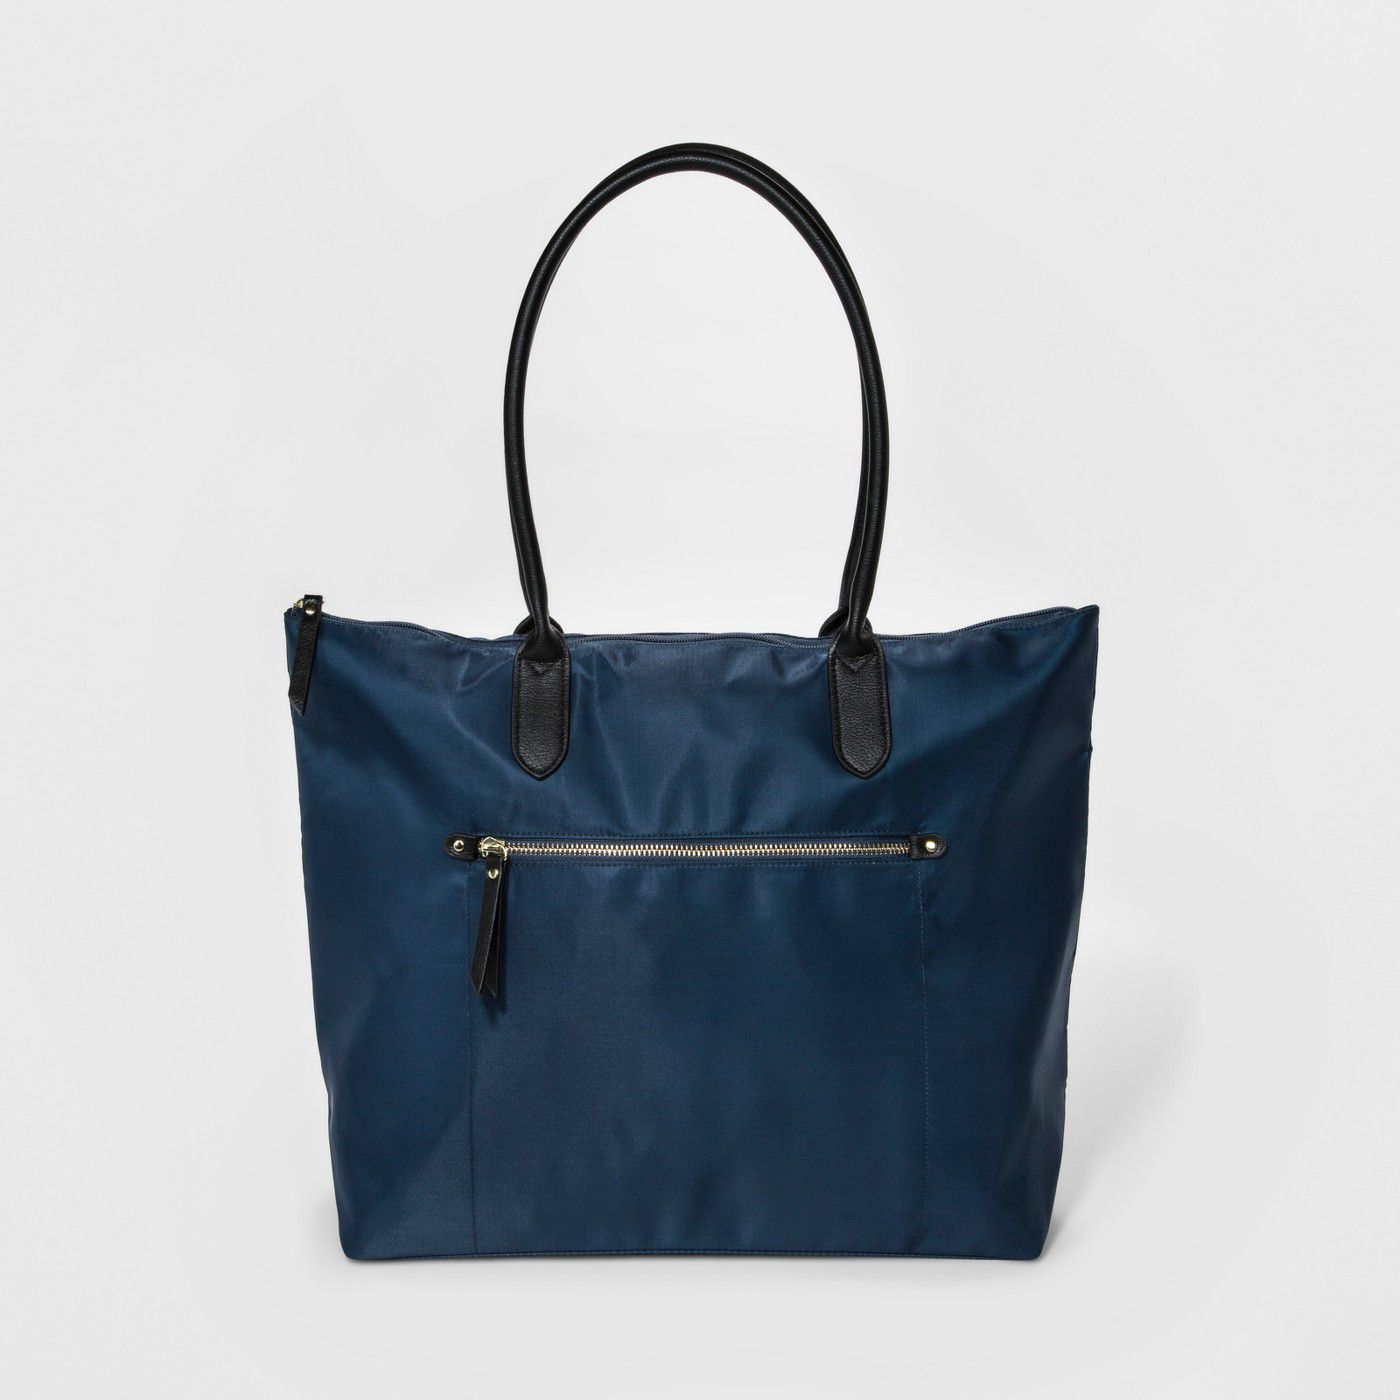 ea886db69255c The 8 Best Nylon Tote Bags of 2019